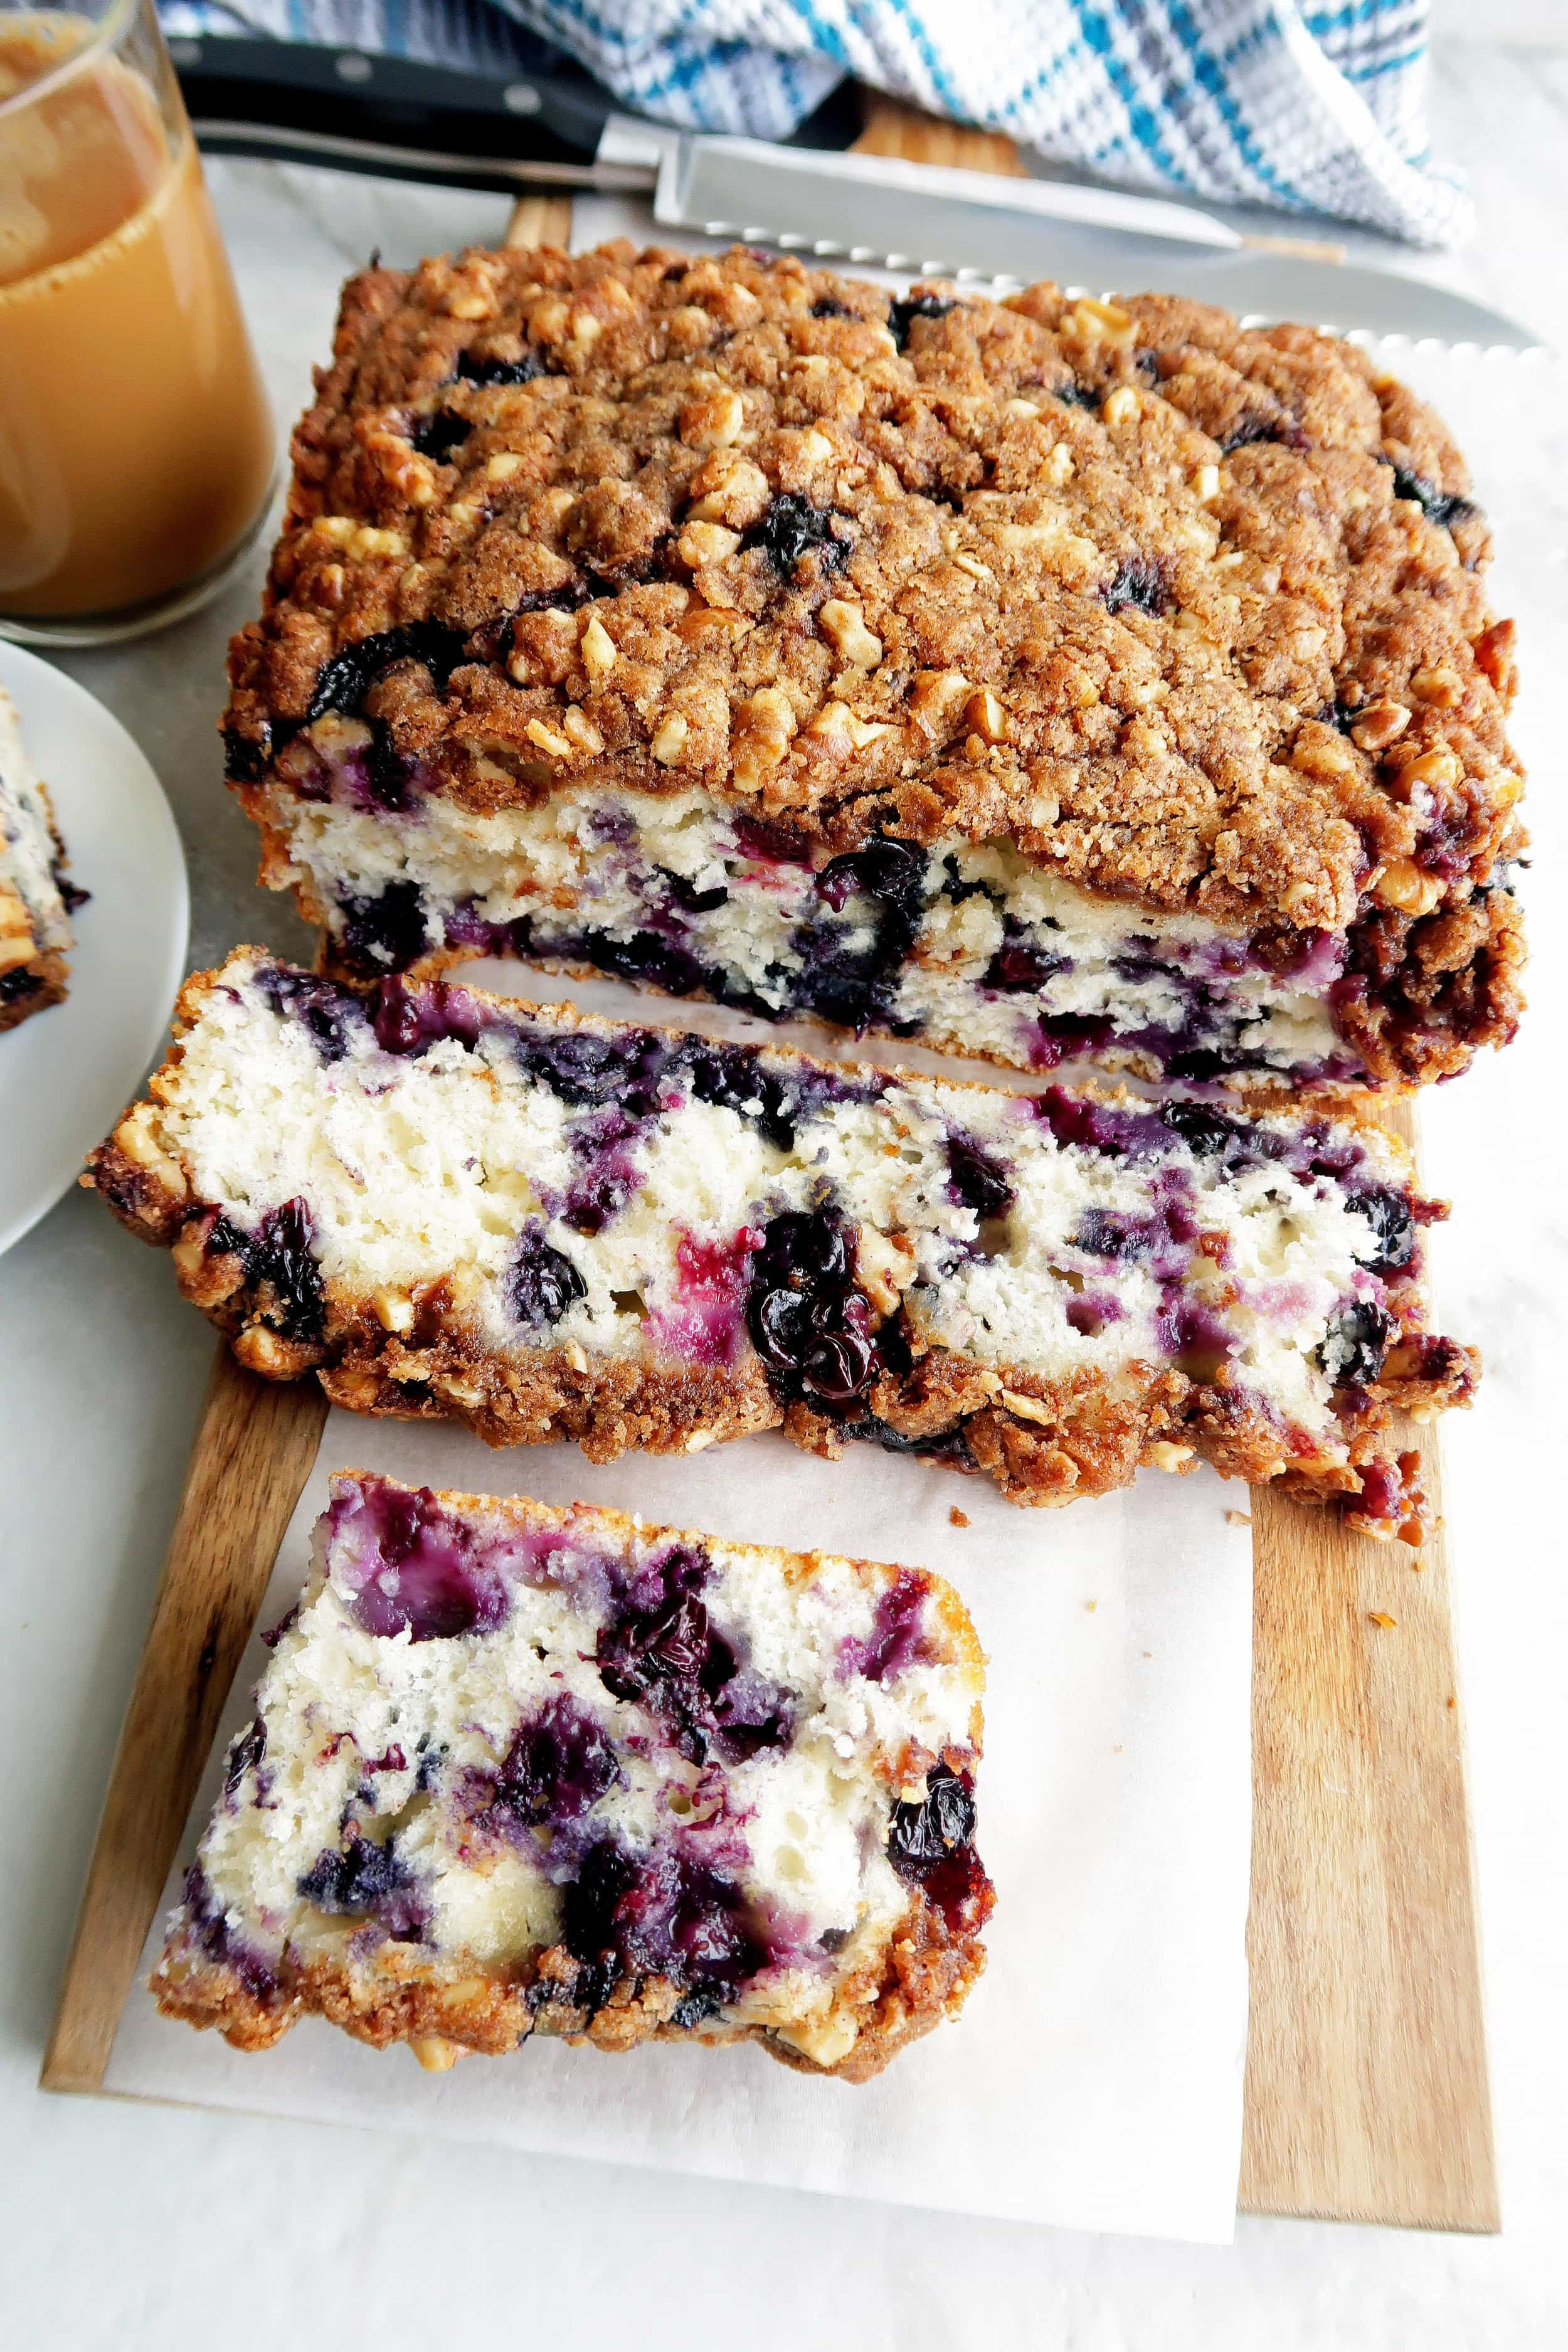 Blueberry Coffee Cake with Brown Sugar-Walnut Crumble